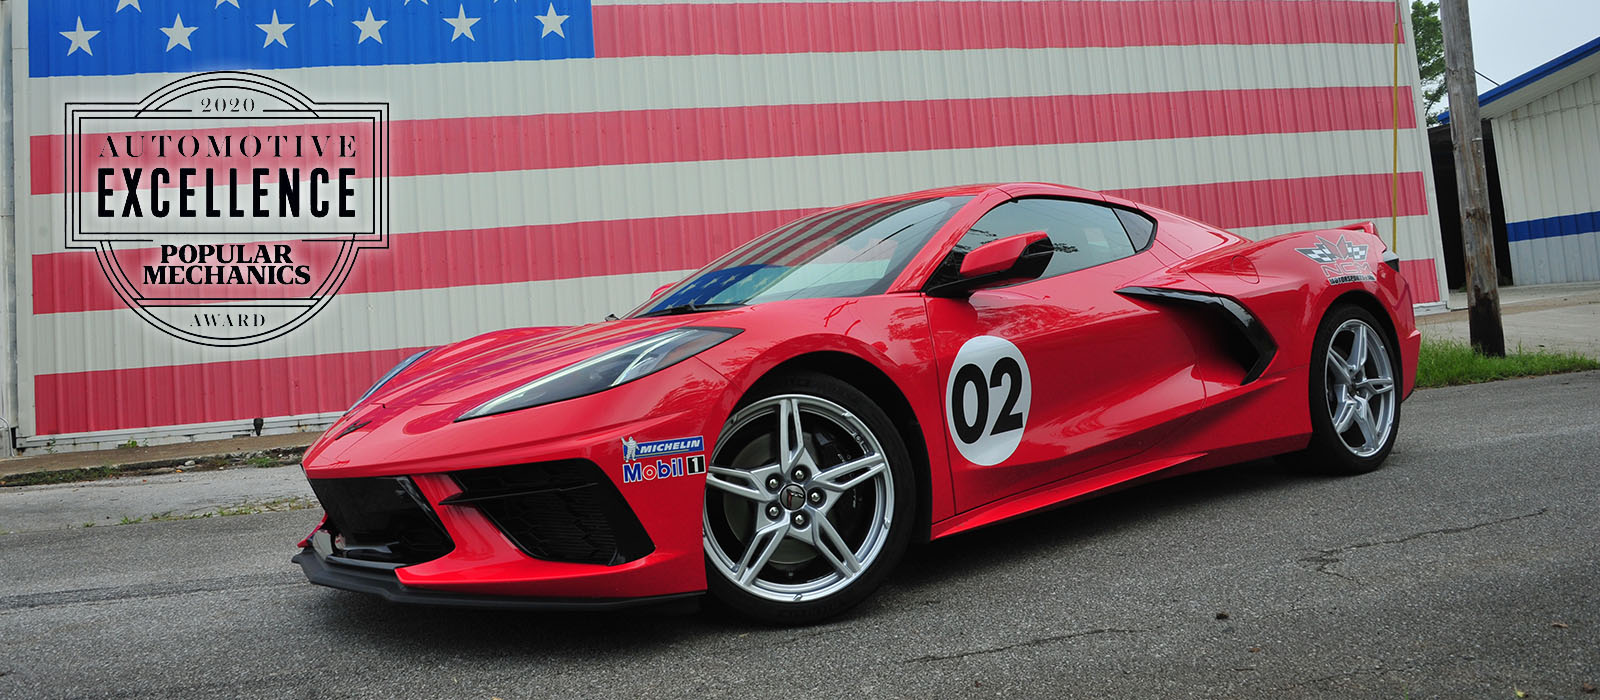 Corvette Awarded 2020 Car of the Year by Popular Mechanics